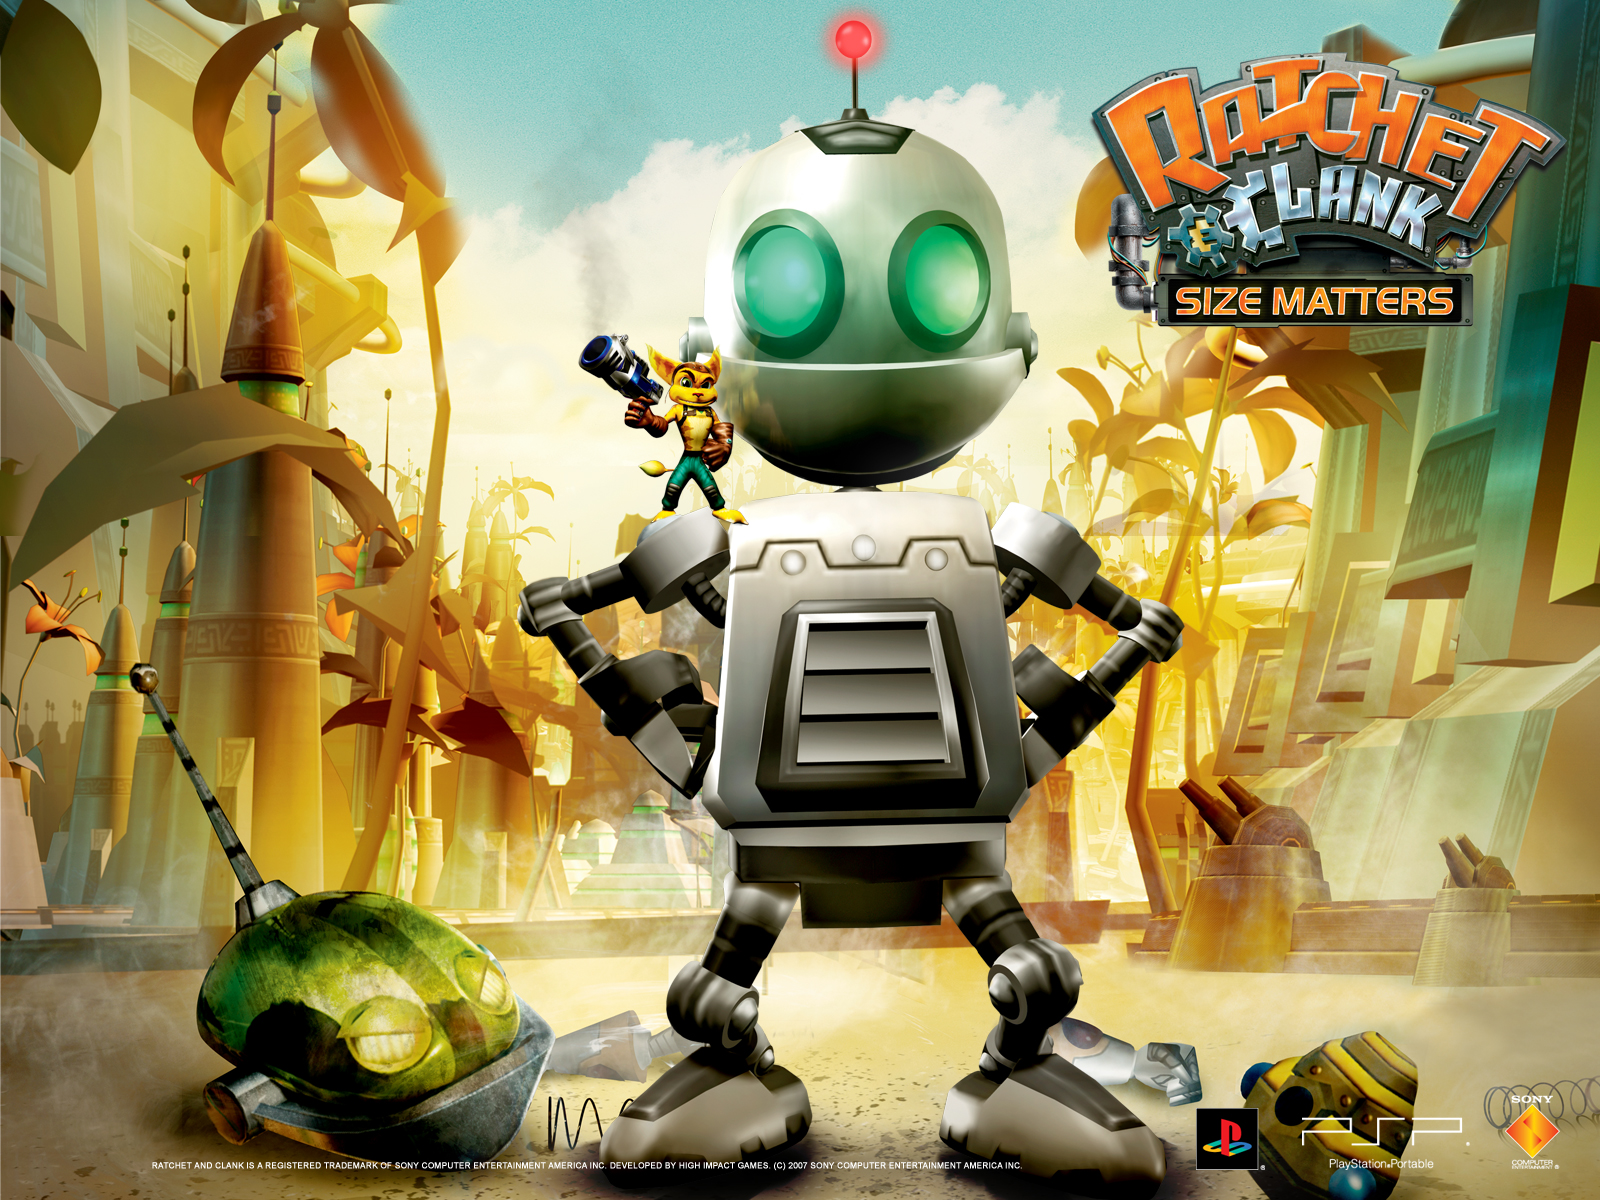 50 Ratchet And Clank Wallpapers On Wallpapersafari